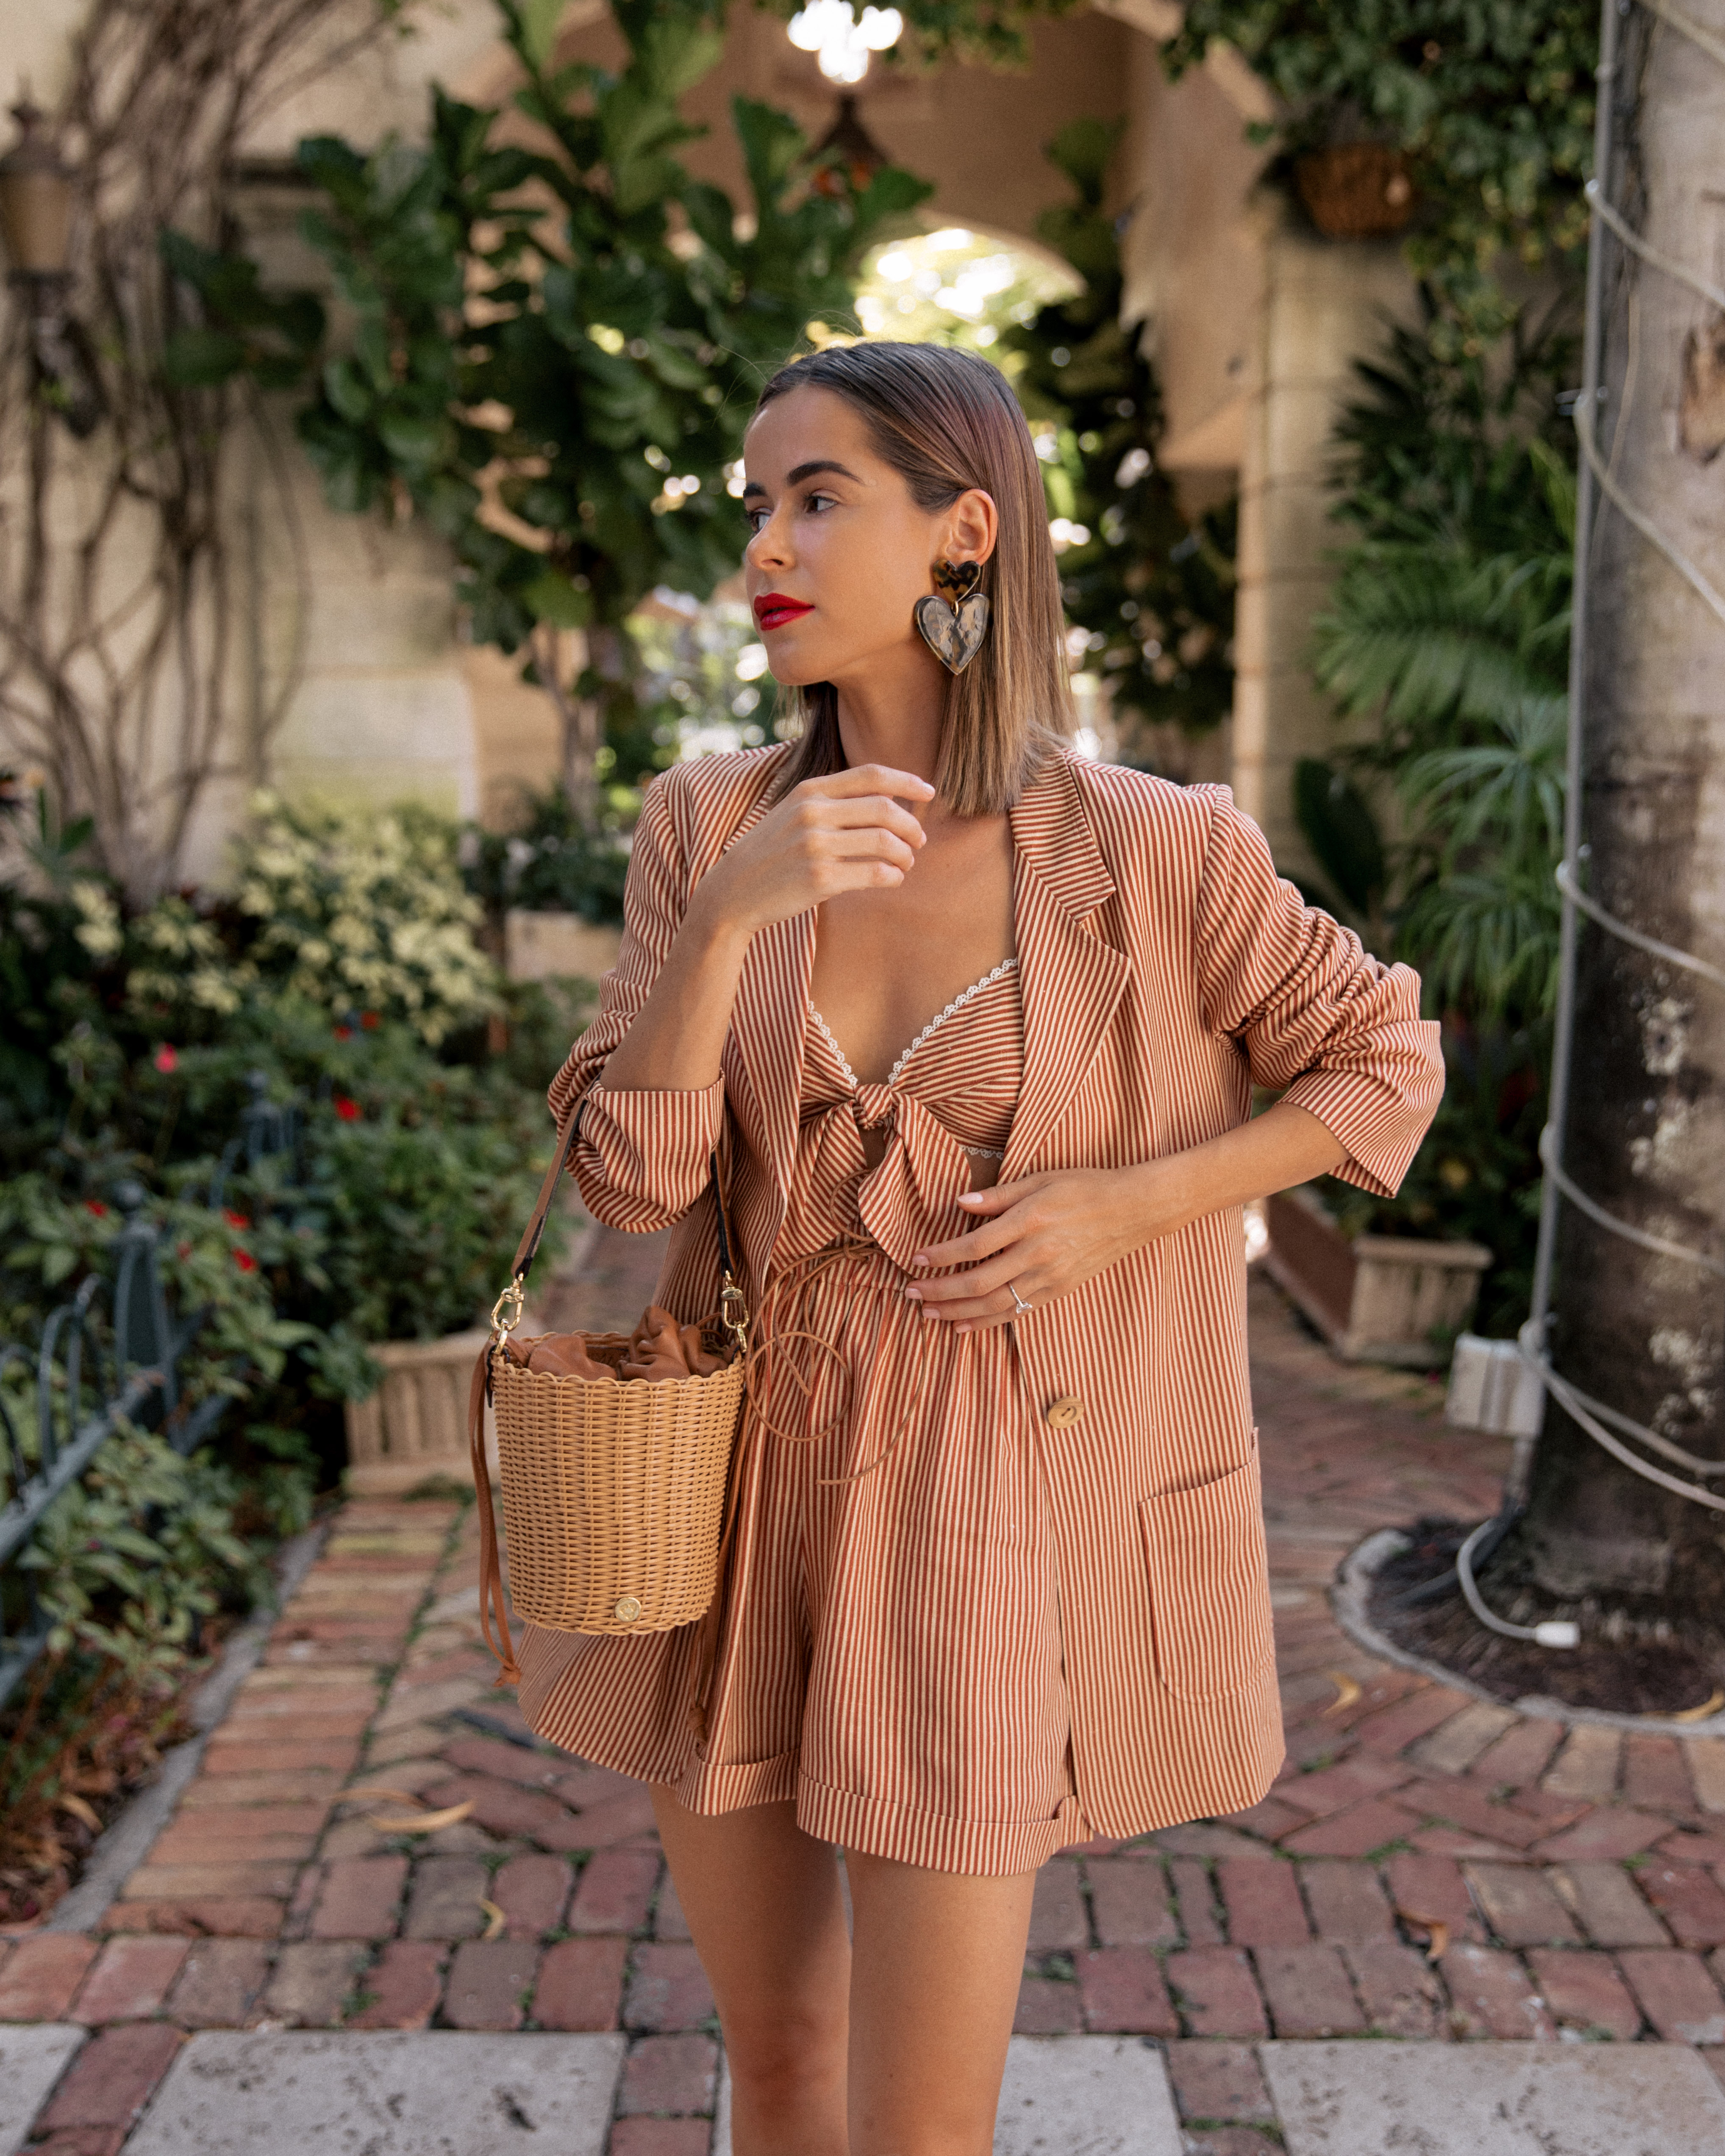 Fashion Blogger Stephanie Hill from The Style Bungalow wears ootd featuring Miguelina